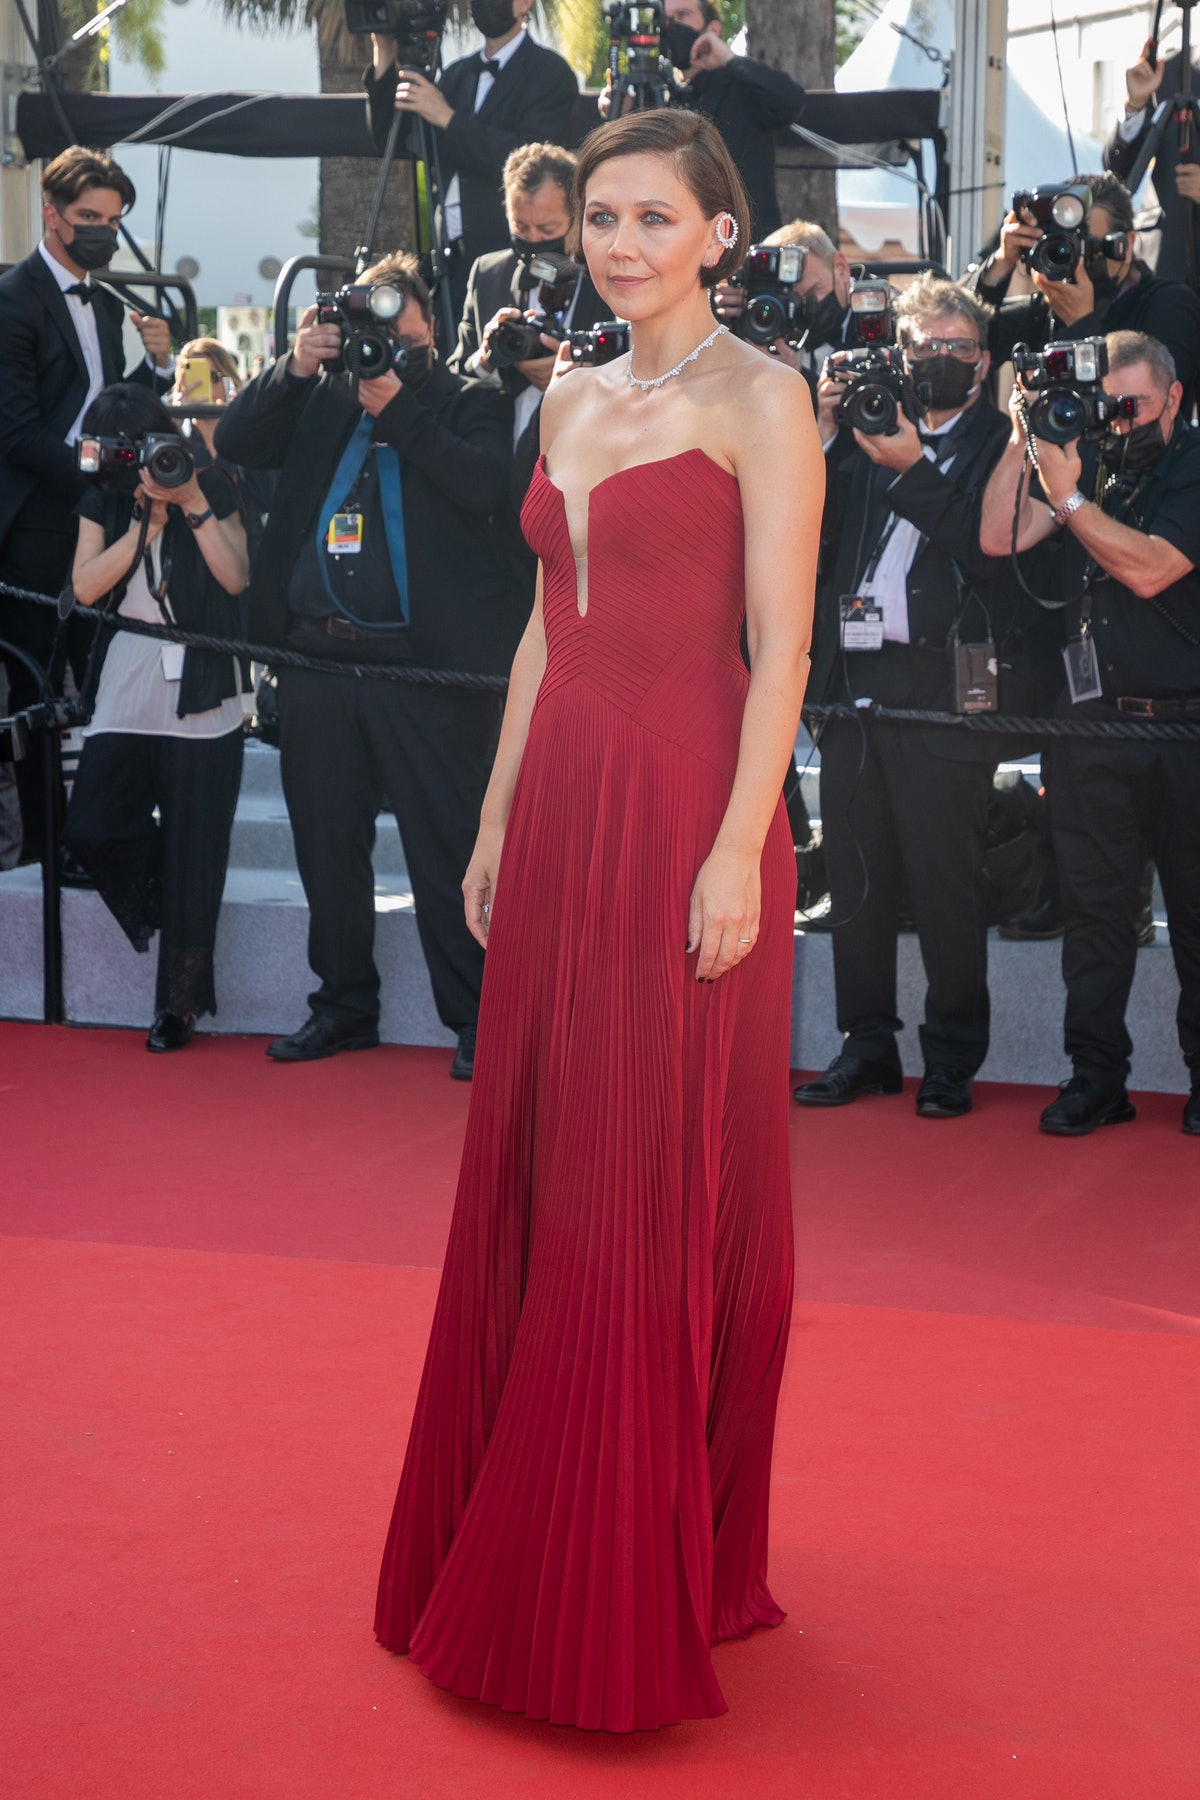 """CANNES, FRANCE - JULY 09: Actress Maggie Gyllenhaal attends the """"Benedetta"""" screening during the 74th annual Cannes Film Festival on July 09, 2021 in Cannes, France. (Photo by Marc Piasecki/FilmMagic)"""